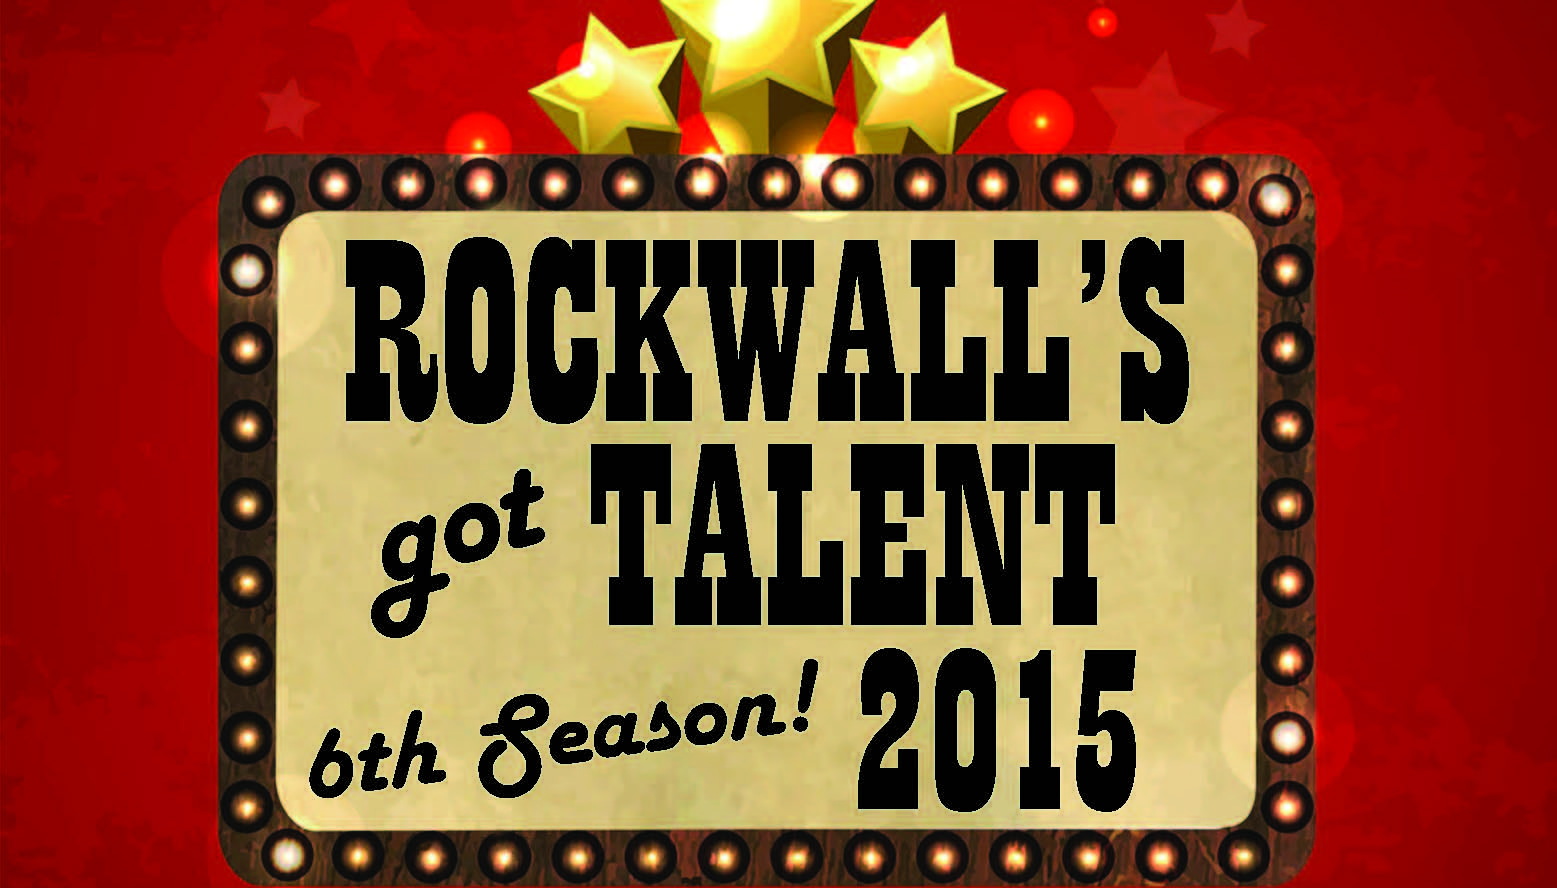 Rockwall's Got Talent entry deadline is Jan 31